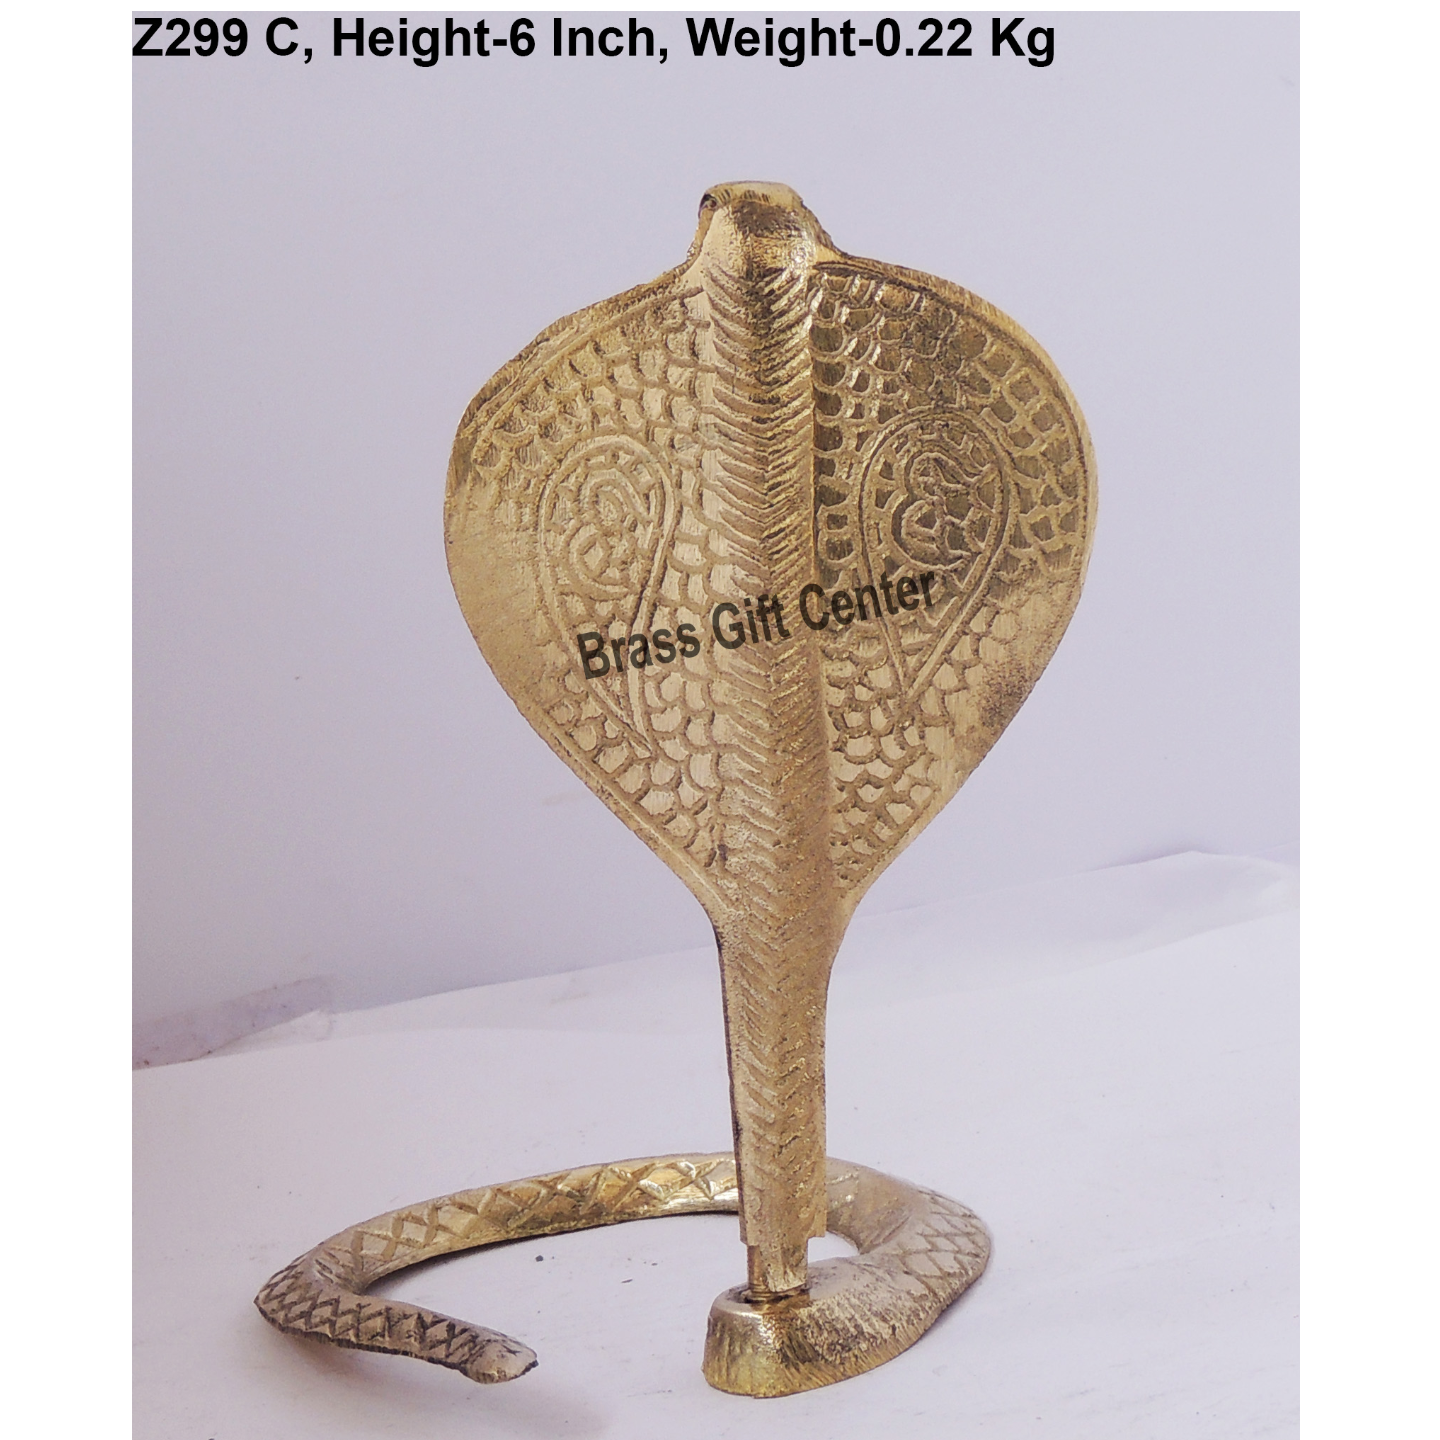 Brass Snake (Saap) For Shivling With Brass Finish, Height 6 Inch (Z299 C)